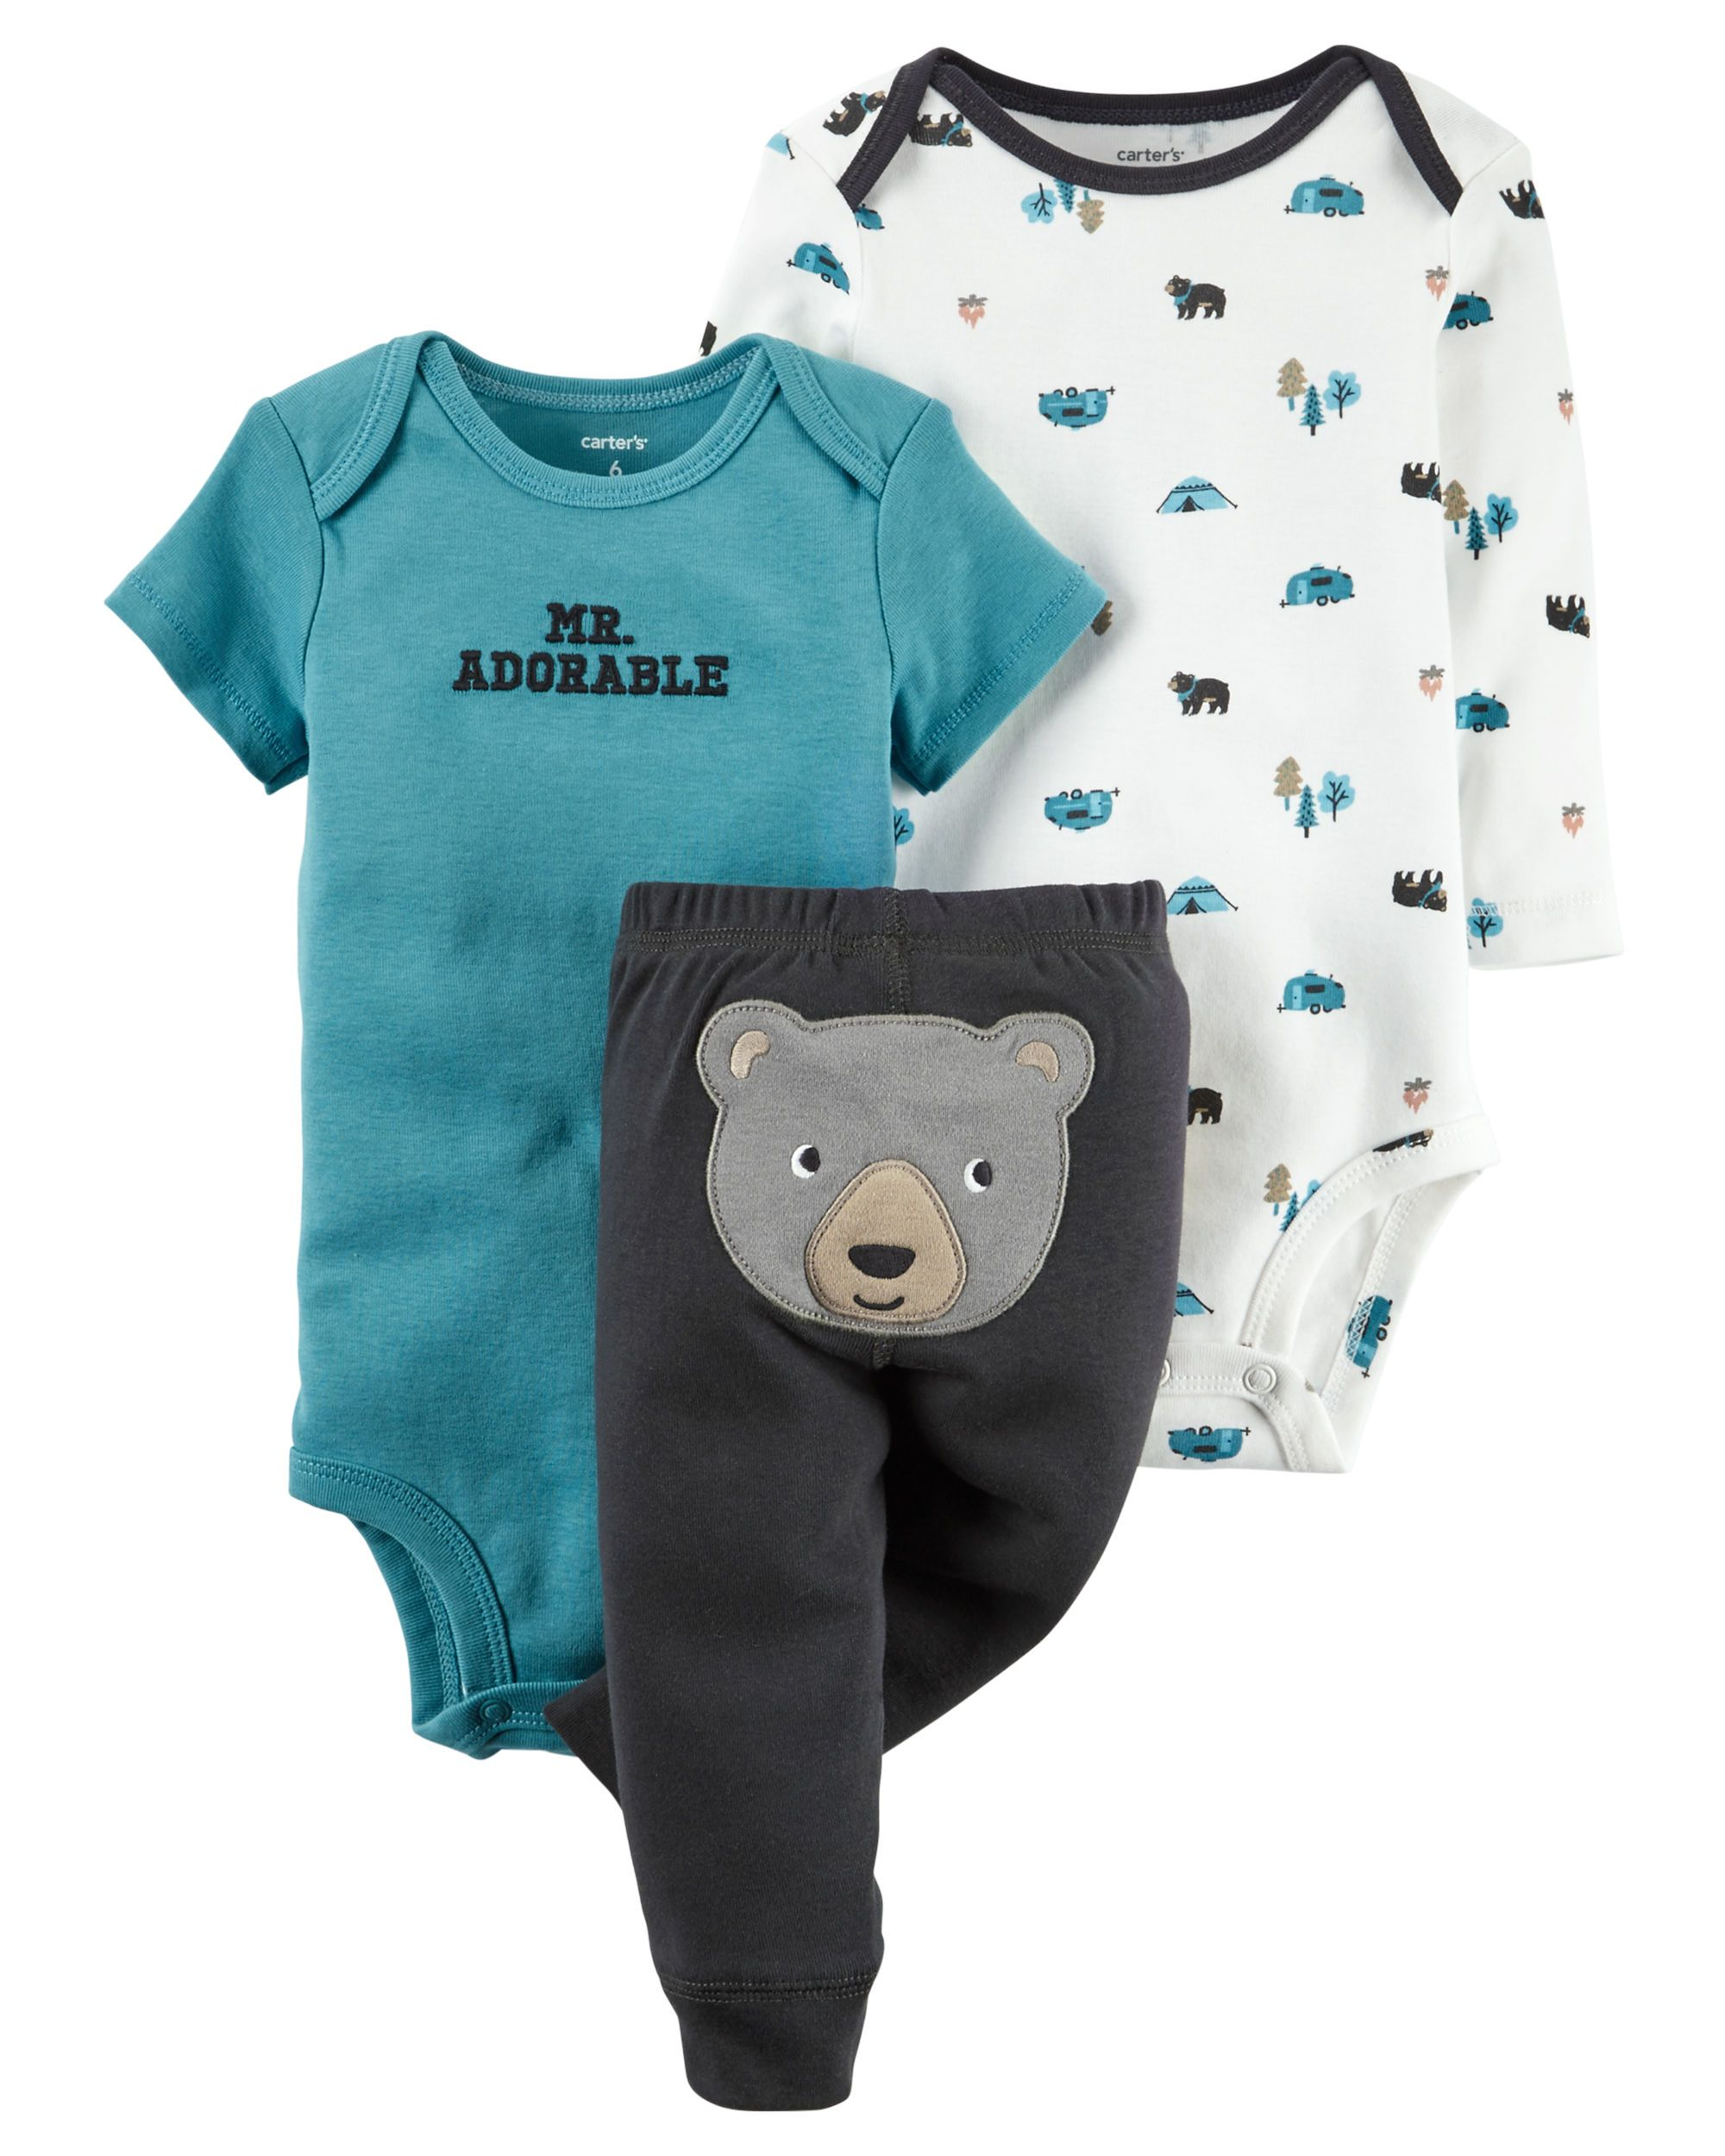 10b4450e9 Featuring a cute little bear on the bottom and two coordinating bodysuits,  this babysoft cotton set lets him mix and match with essential pants.